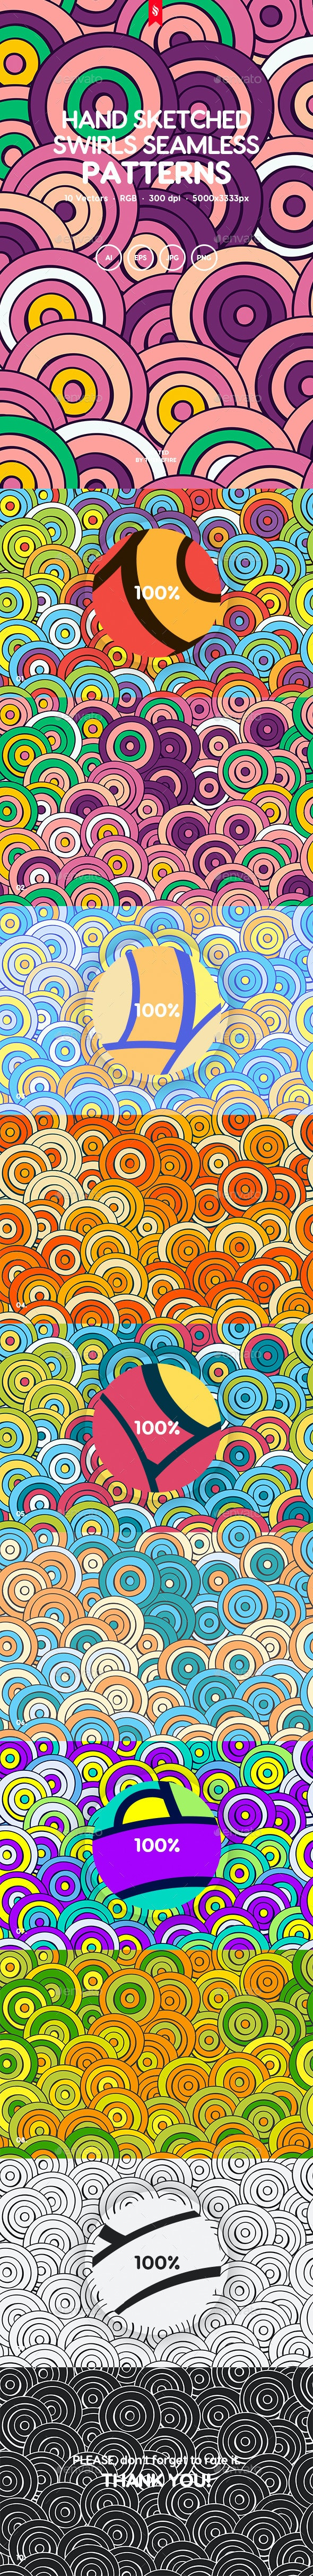 Colorful Hand Sketched Swirls Seamless Patterns - Patterns Backgrounds